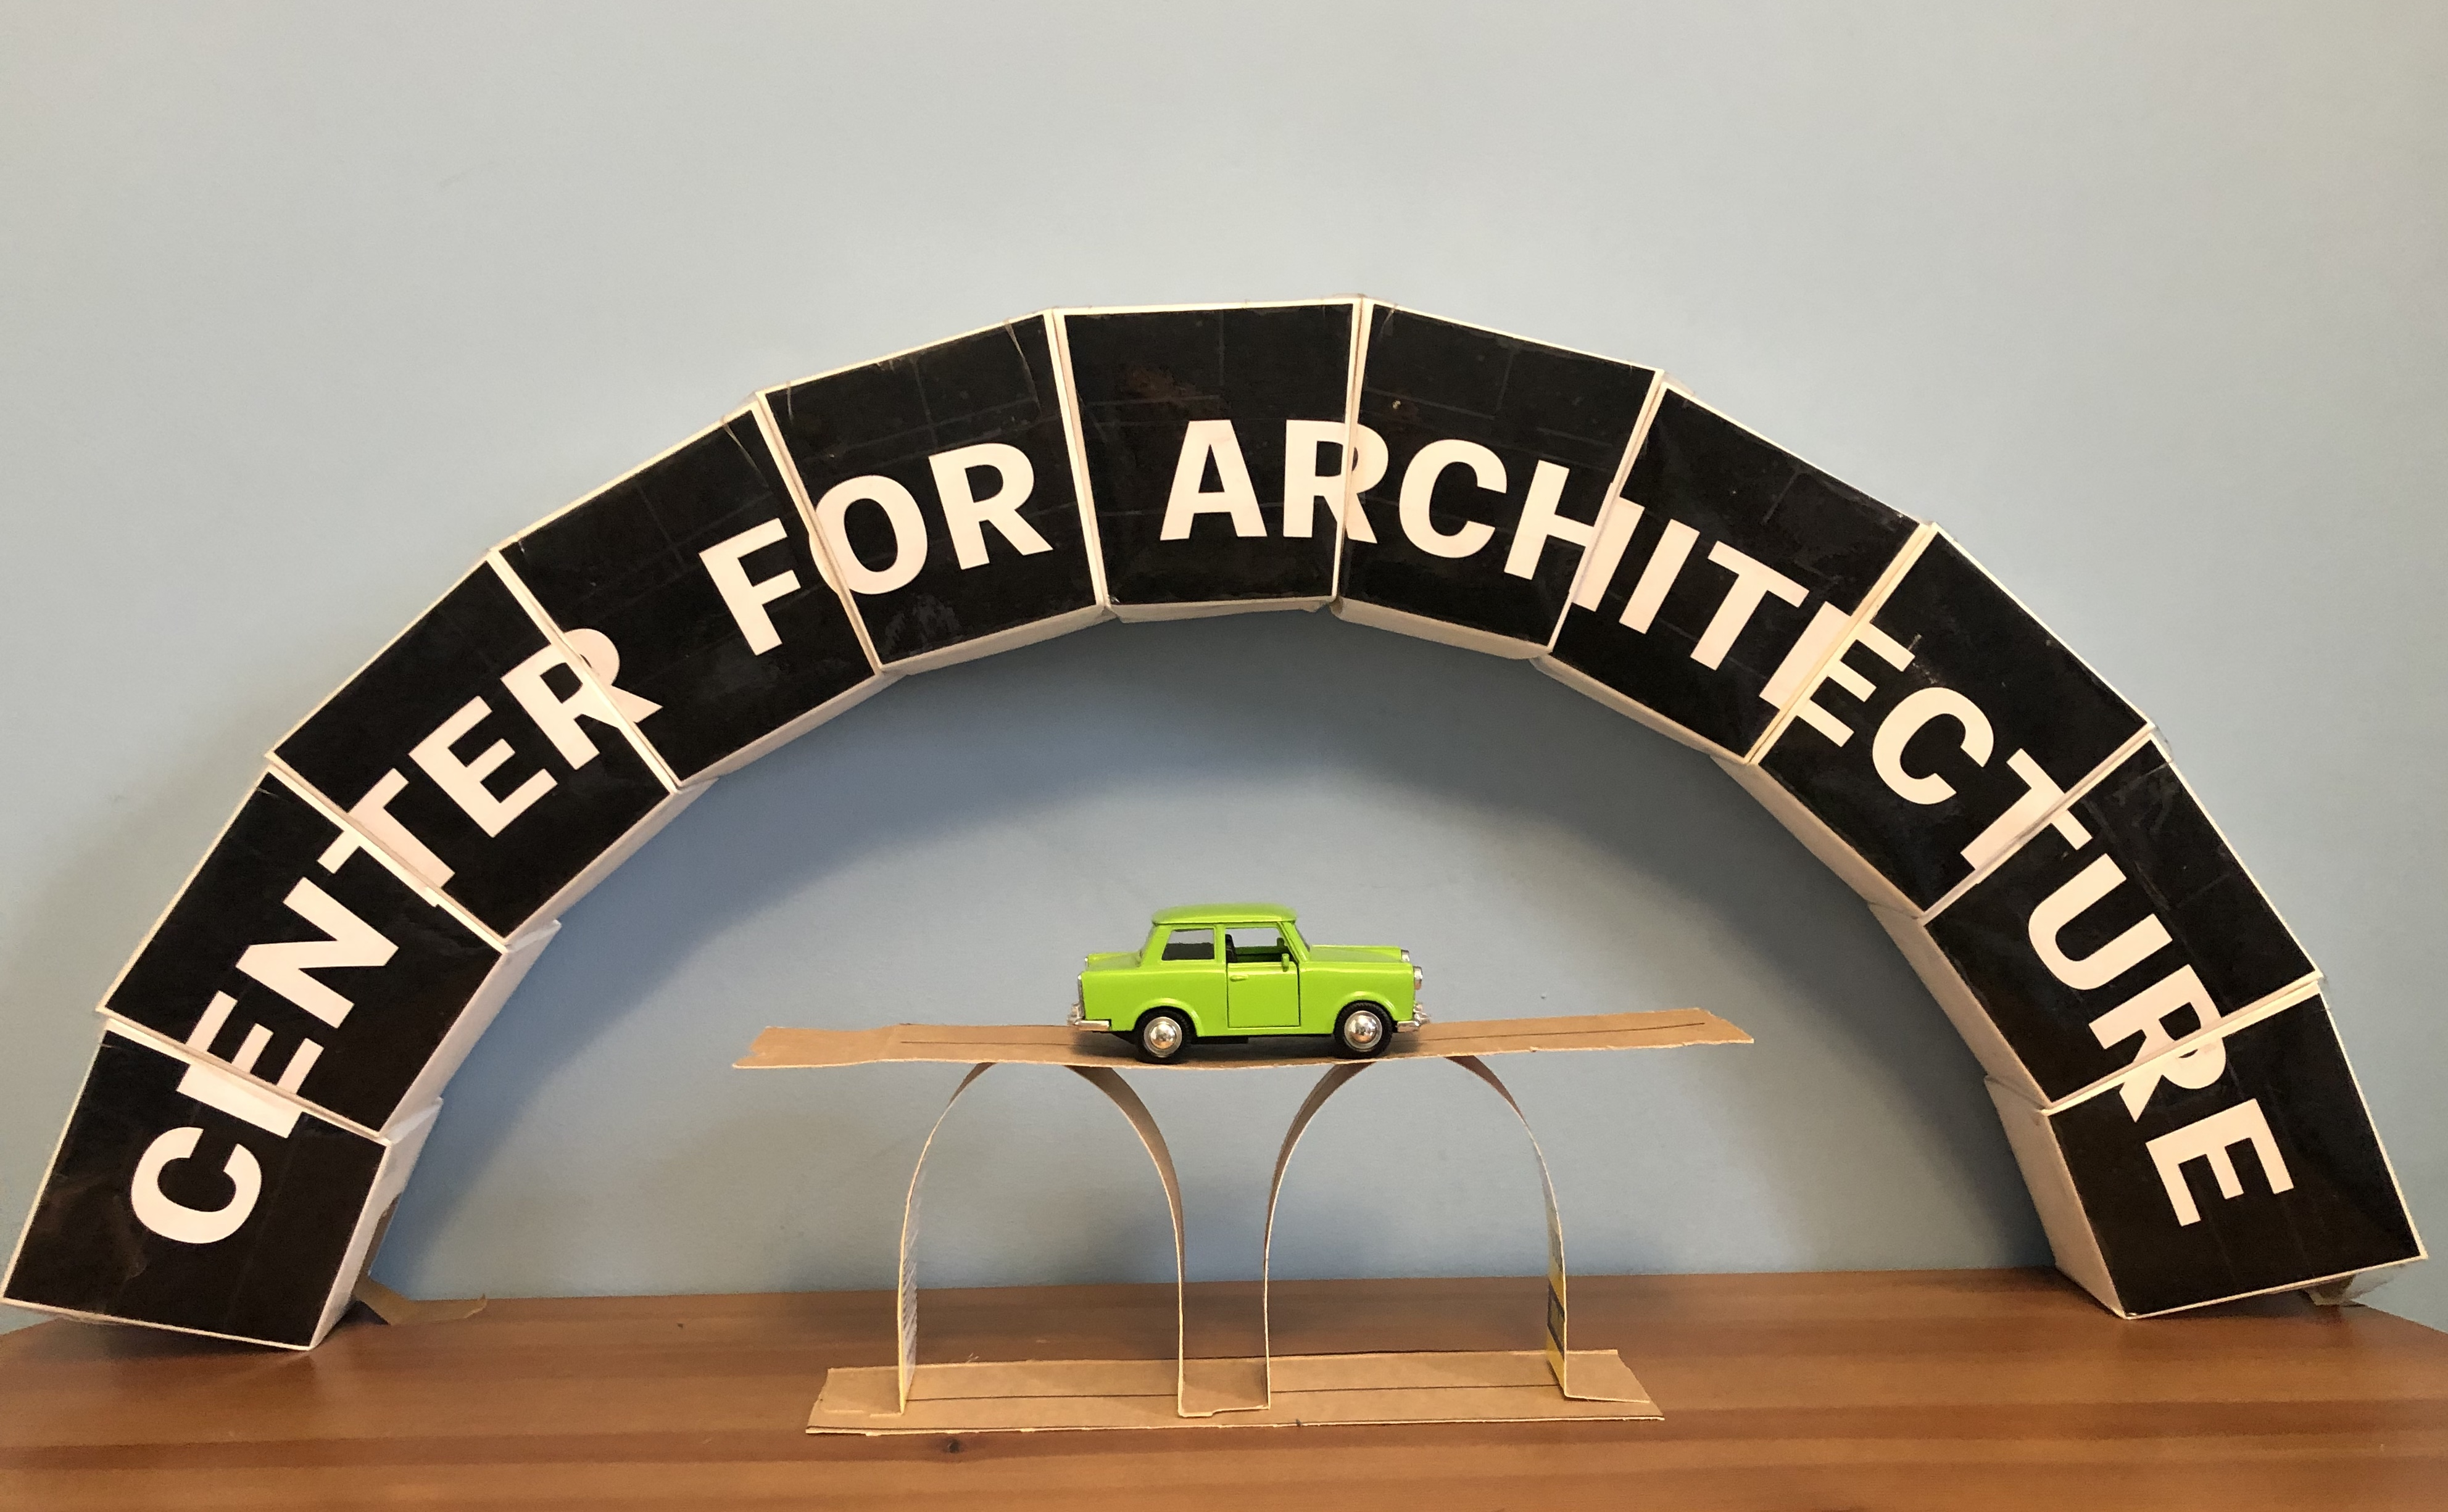 Architecture at Home: Arch Bridges at Center for Architecture